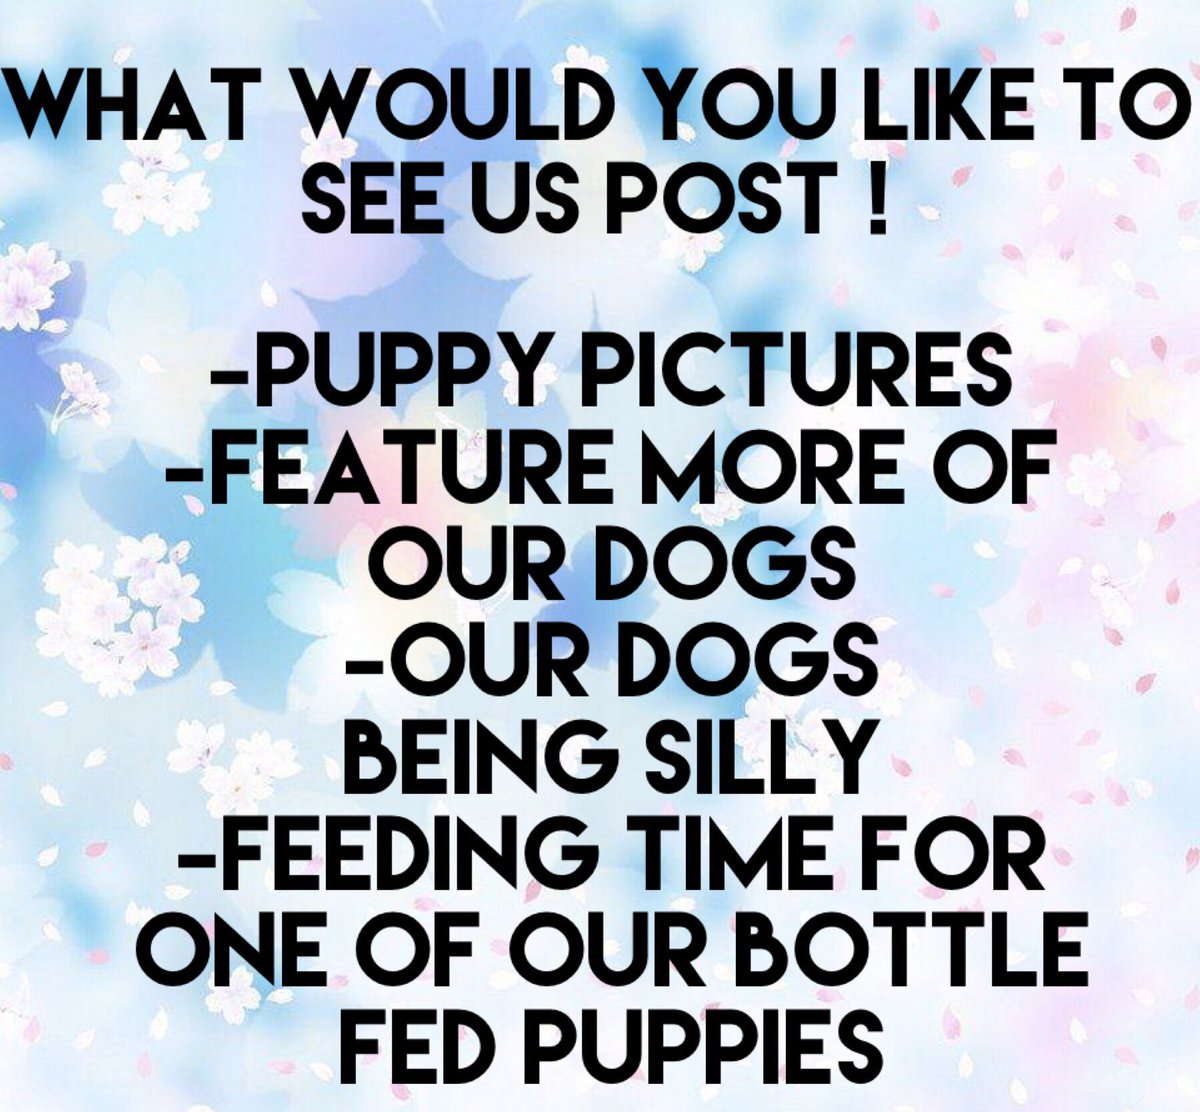 What would you like to see us post more about? #adoptdontshop #ilovedogs #dogrescue #happydogs #saveadog #savearescue #okinawa #okinawajapan #dogsofinstagram #donate #savelifes #love #lovedogspic.twitter.com/PxhOrFFe1O